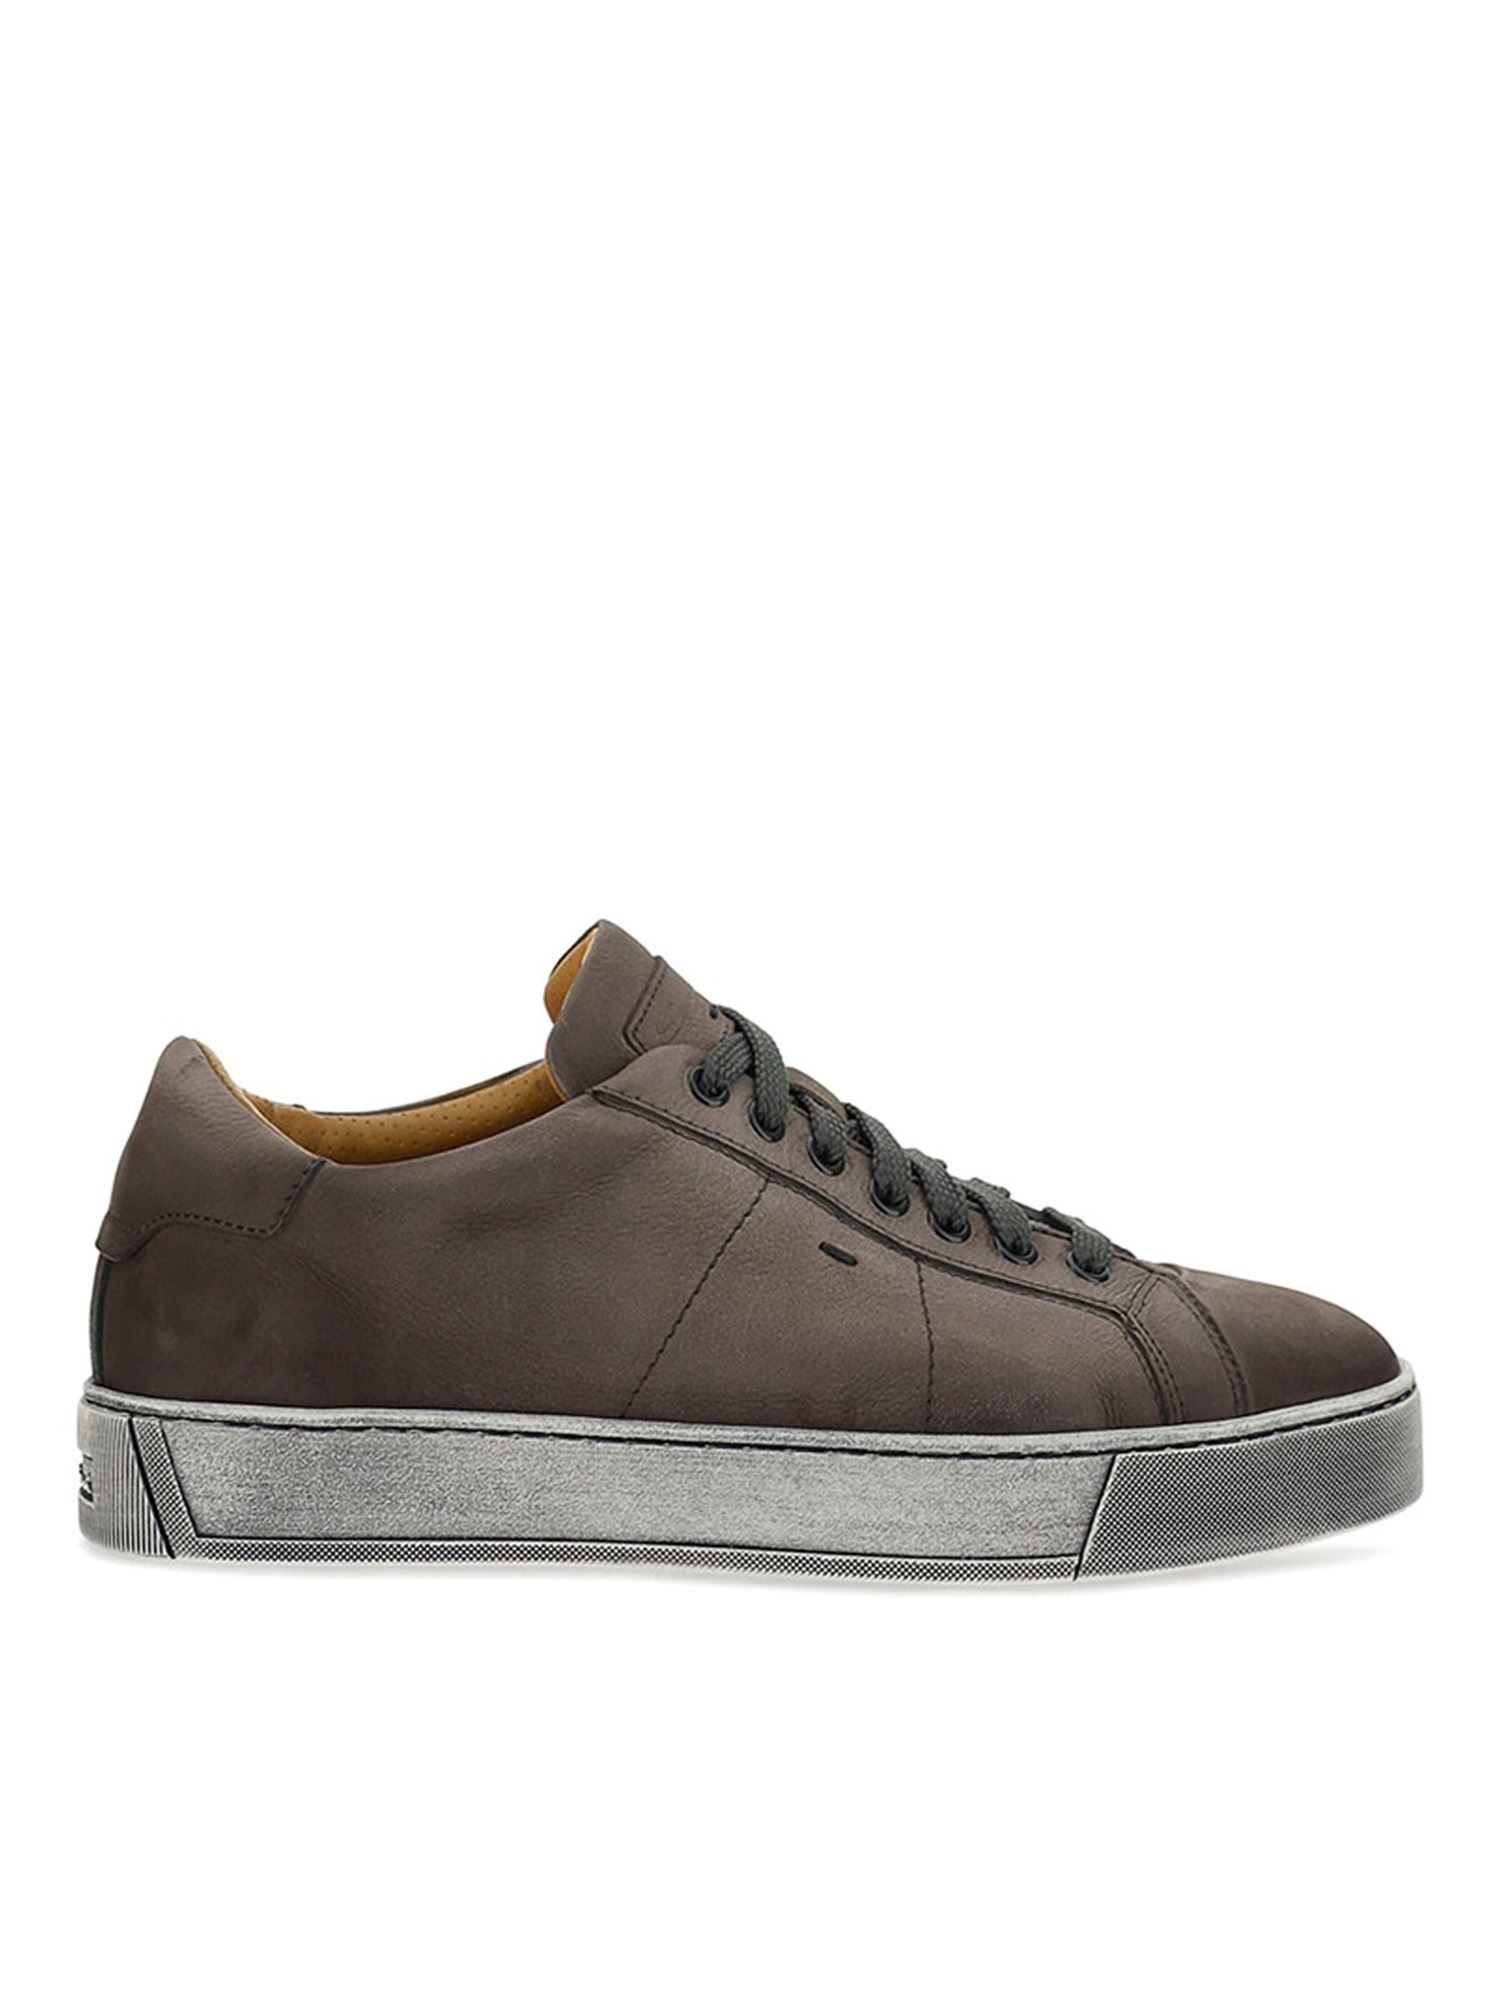 Santoni VINTAGE EFFECT SNEAKERS IN GREY